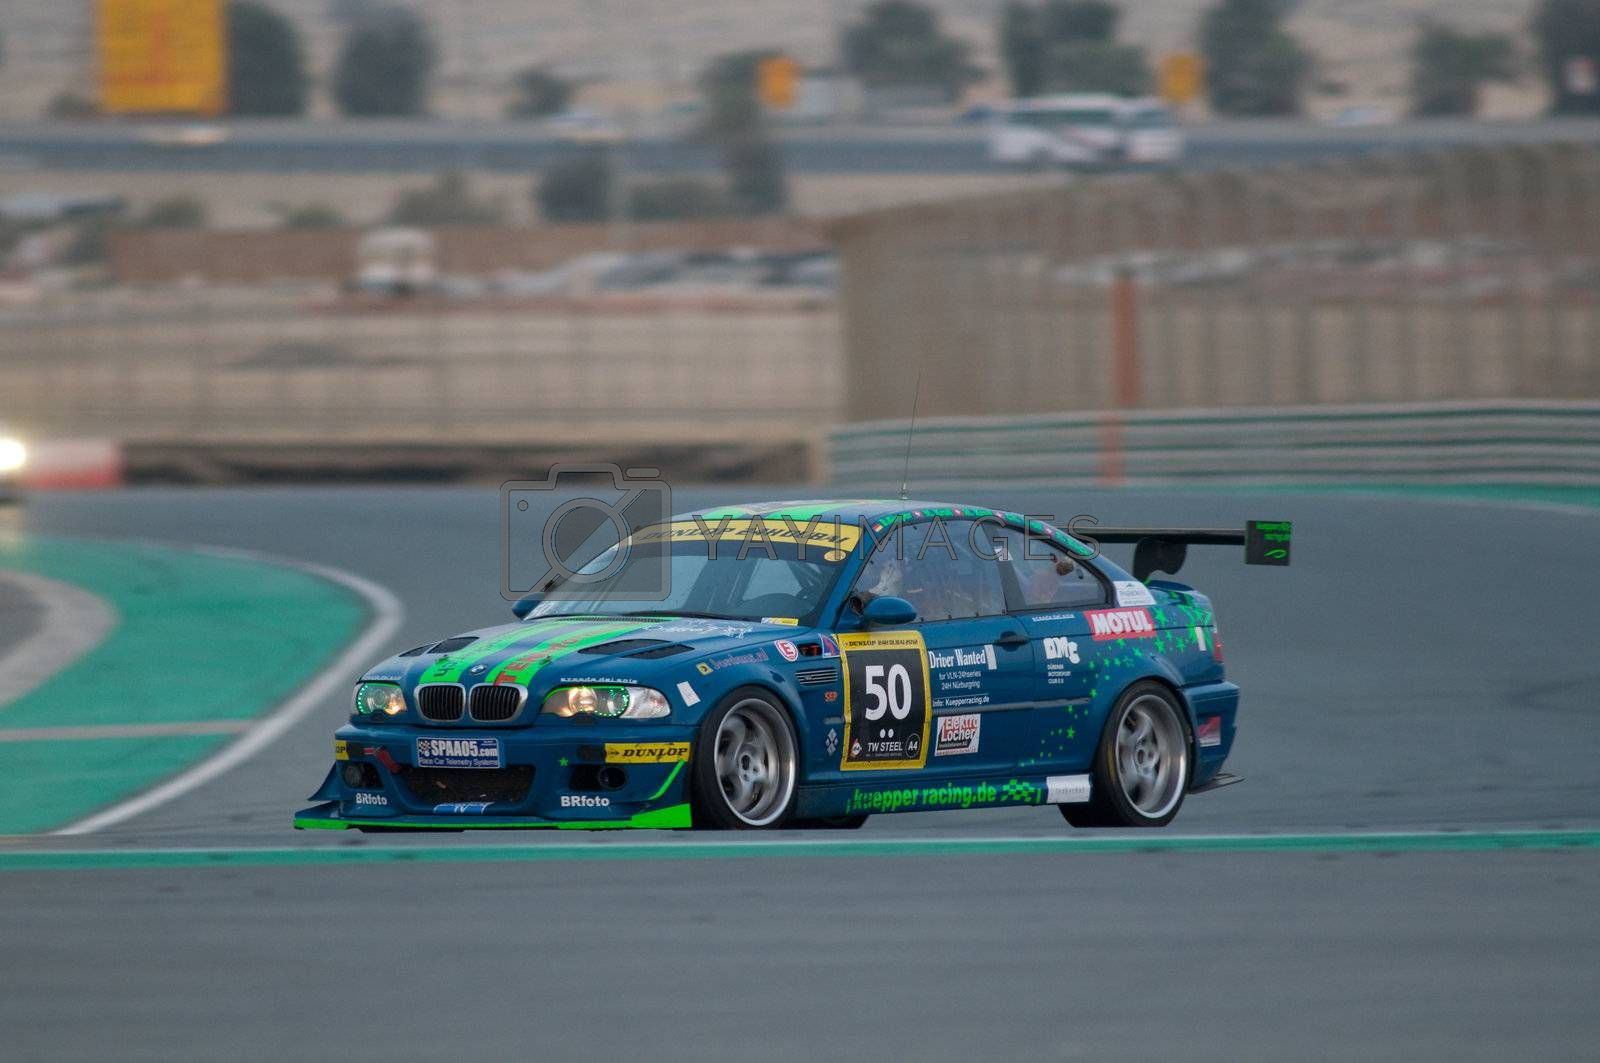 DUBAI - JANUARY 14: Car 50, a BMW E46 Coupe, during the morning hours of the 2012 Dunlop 24 Hour Race at Dubai Autodrome on January 14, 2012.